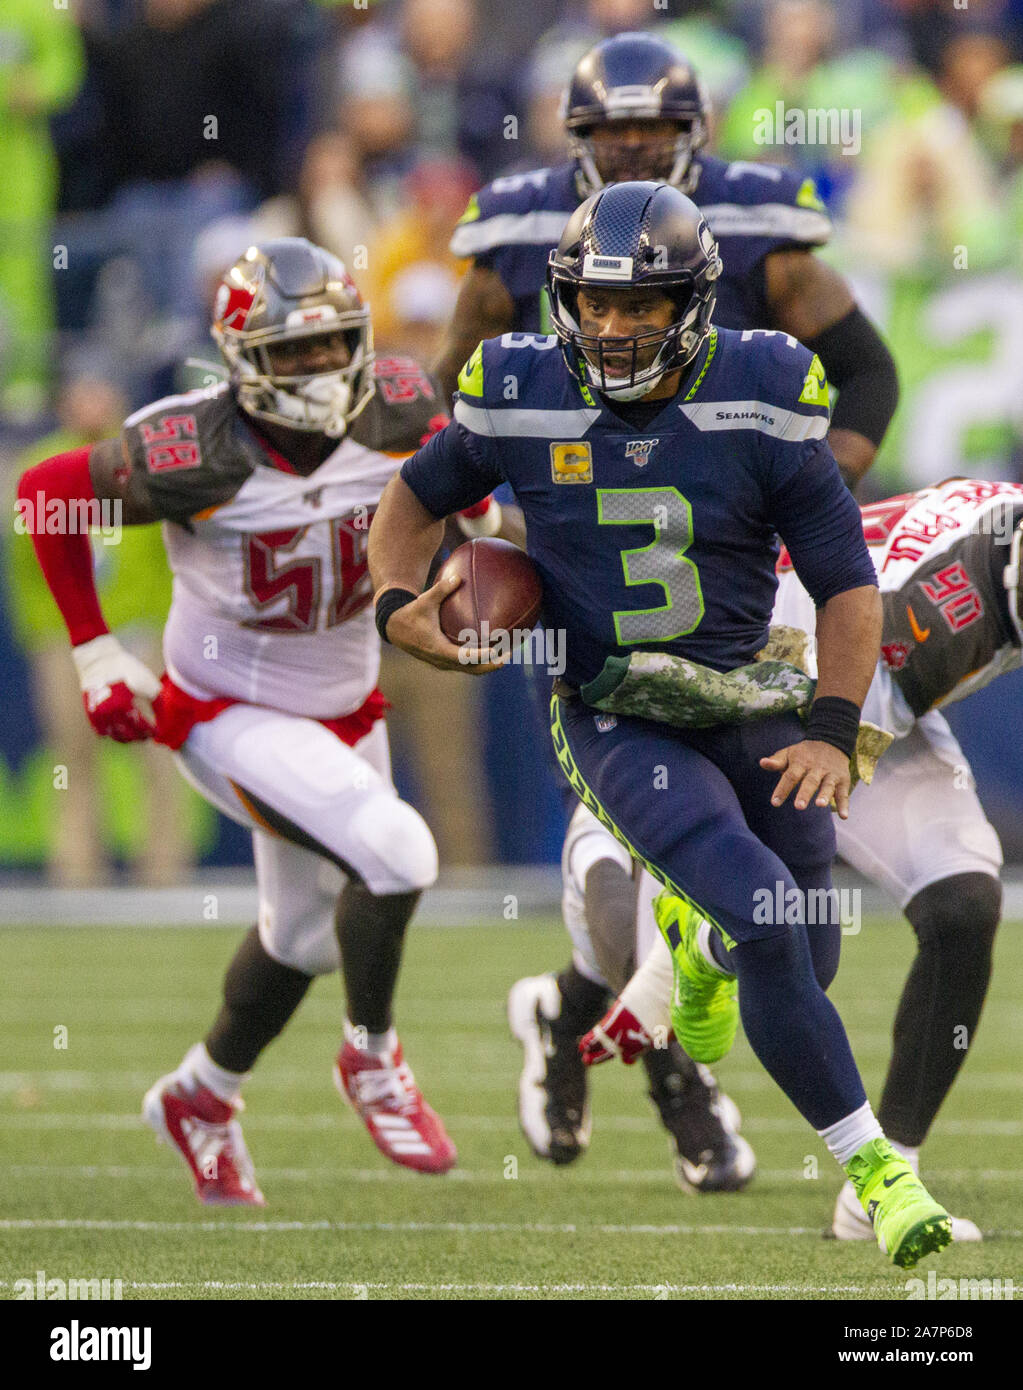 Seattle, United States. 03rd Nov, 2019. Seattle Seahawks quarterback Russell Wilson (3) scrambles against the Tampa Bay Buccaneers for a 21-yard gain during the fourth quarter at CenturyLink Field on Sunday, November 3, 2019 in Seattle, Washington. The Seahawks beat the Buccaneers 40-34 in overtime. Jim Bryant Photo/UPI Credit: UPI/Alamy Live News Stock Photo